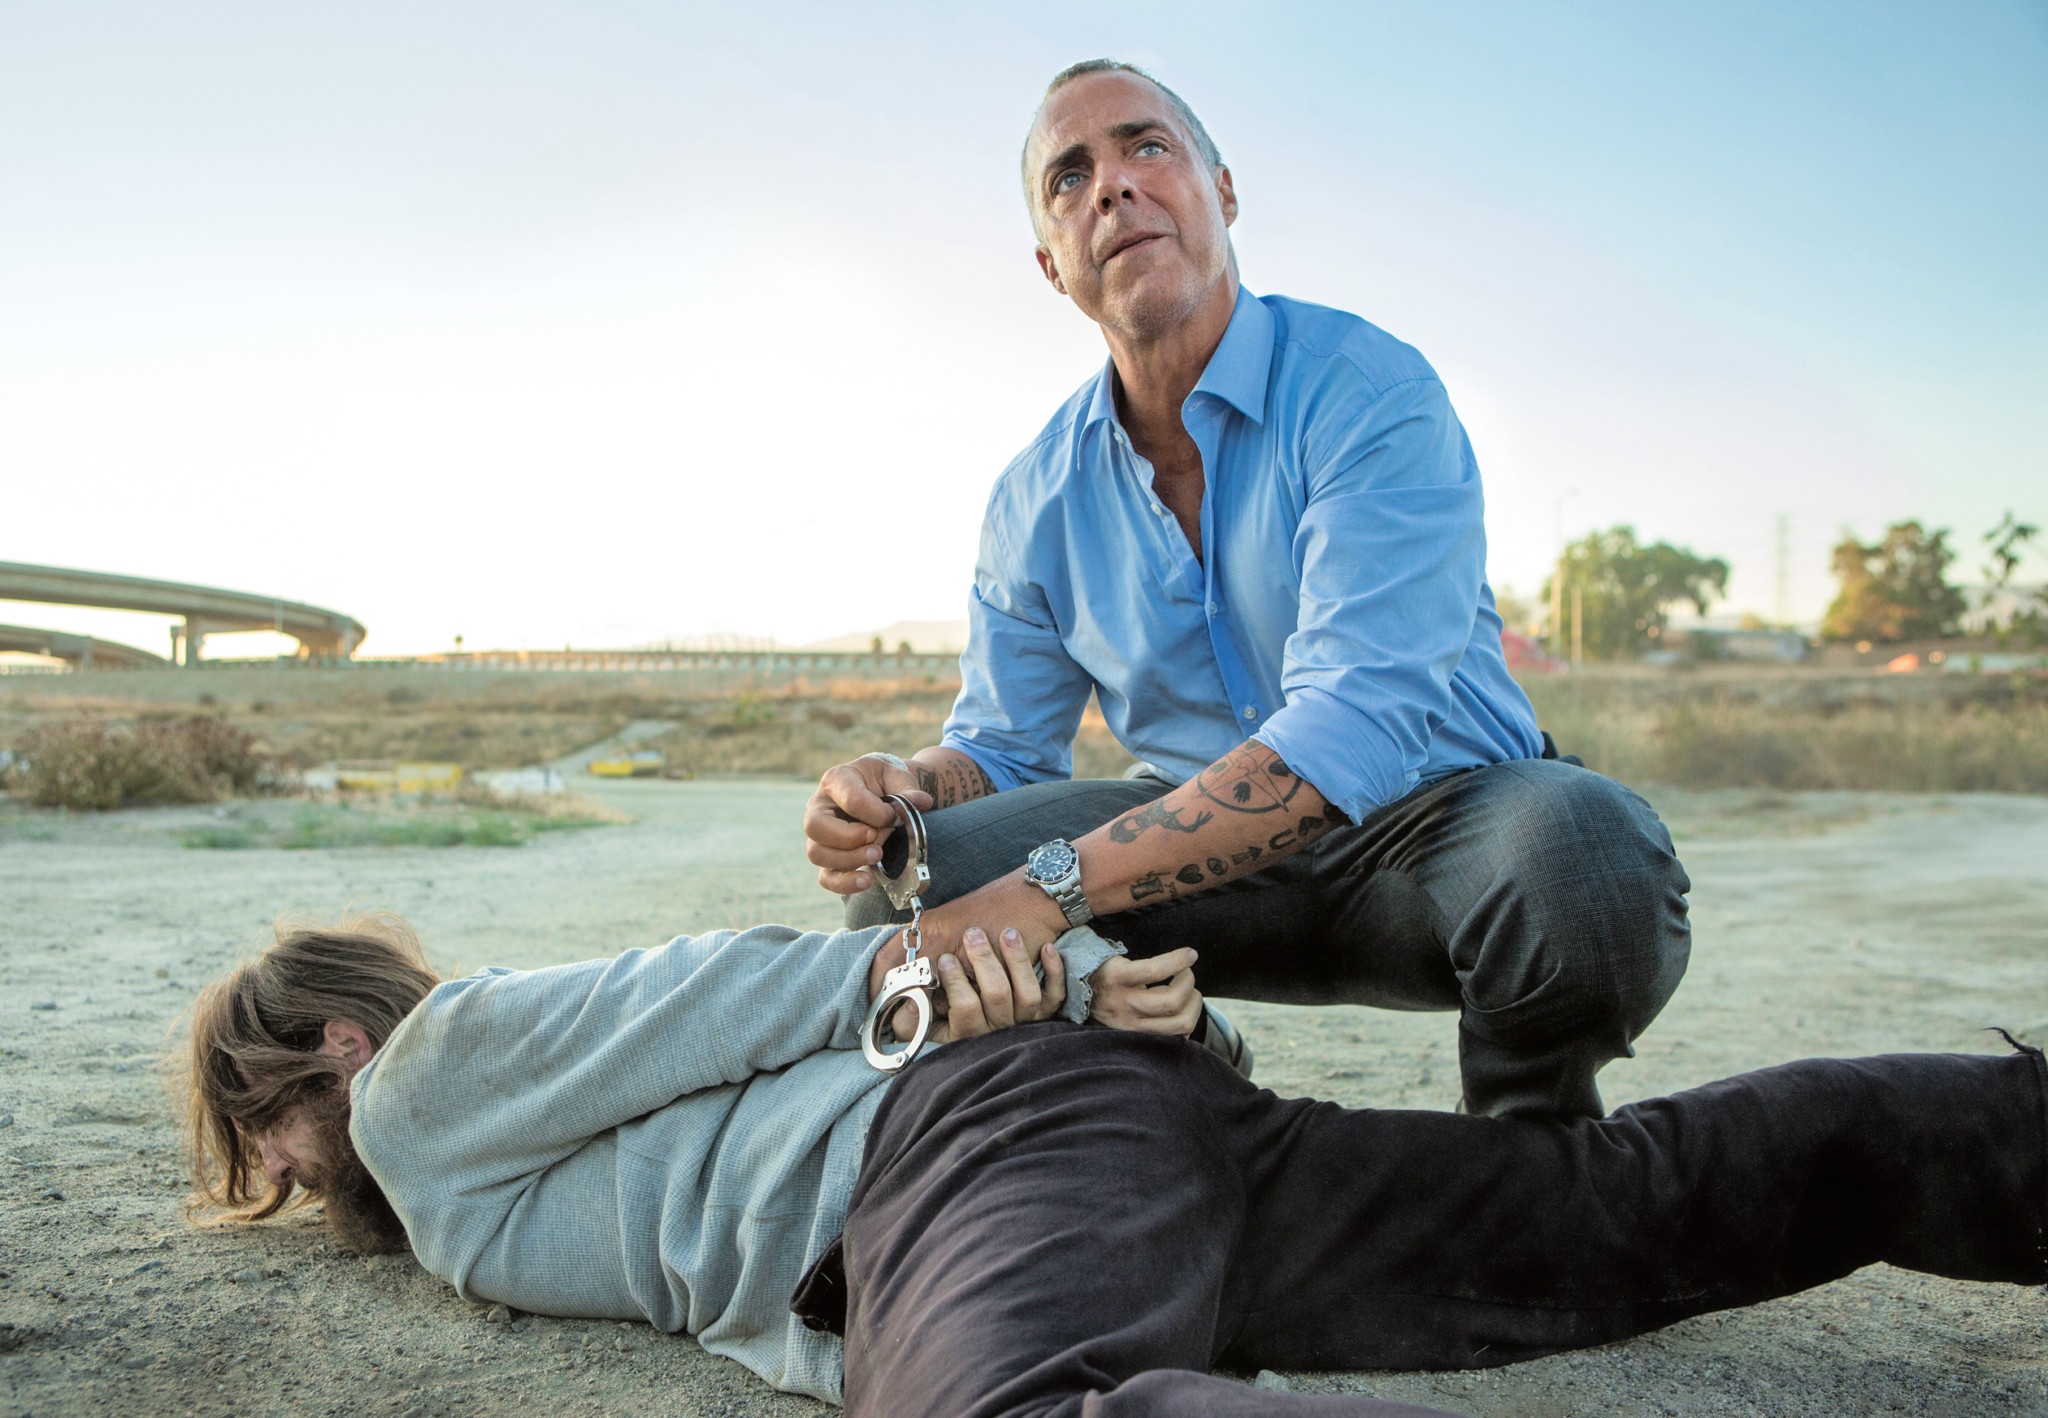 Roush Review: Bosch Is a Less Dirty Harry in Season 2